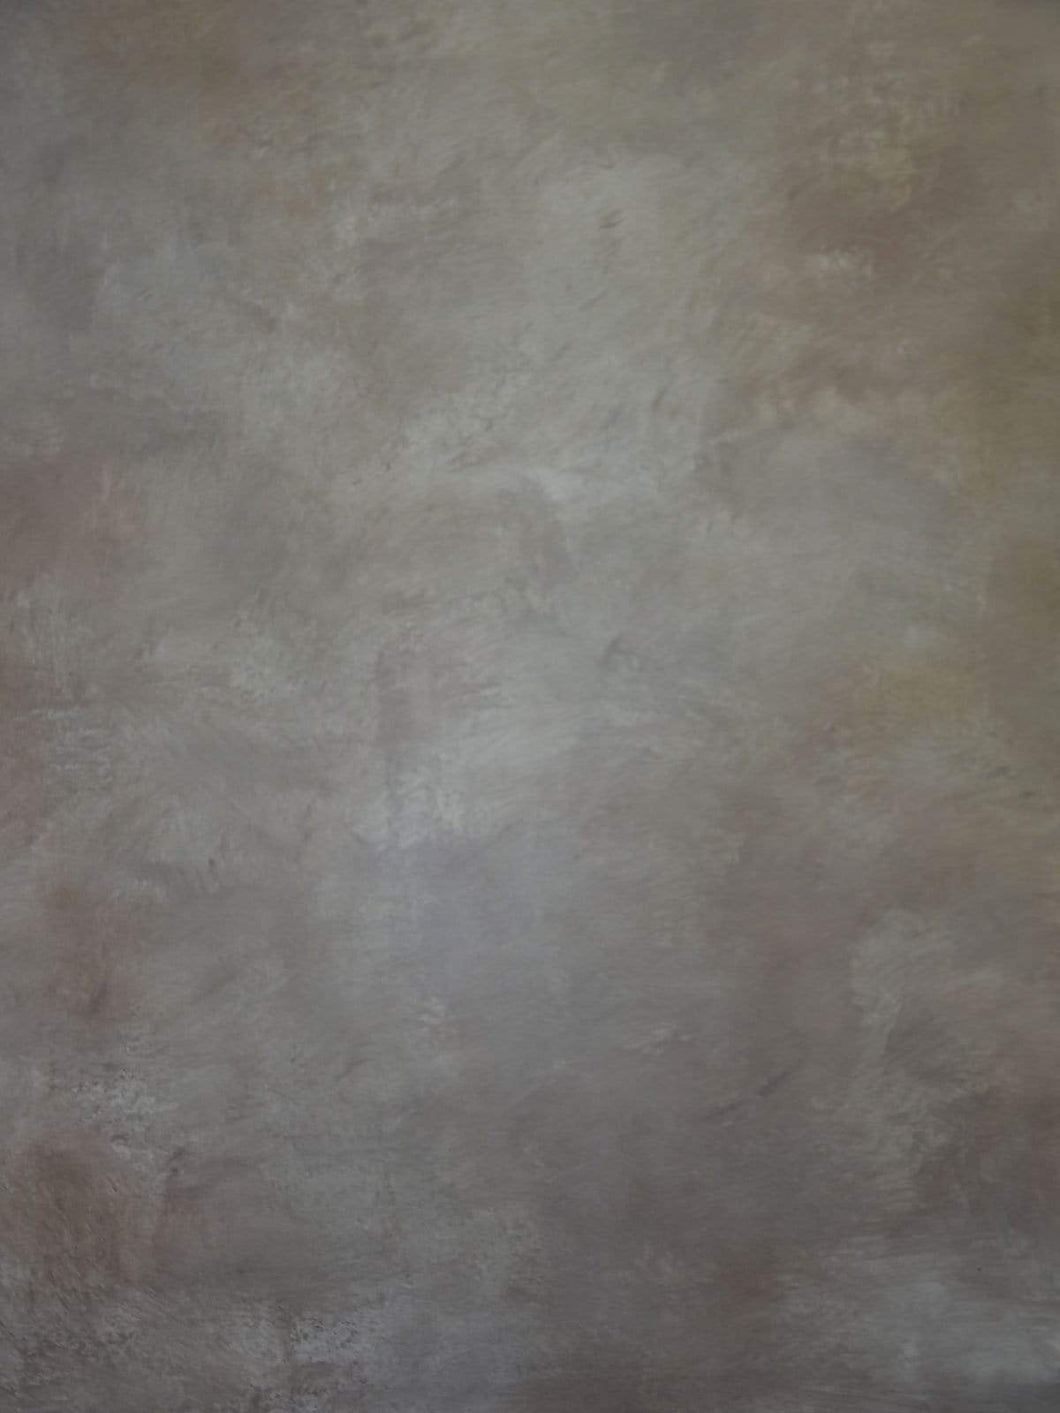 Katebackdrop:Kate Abstract Textured Dark Grey Brown Old Master Backdrop for Photography